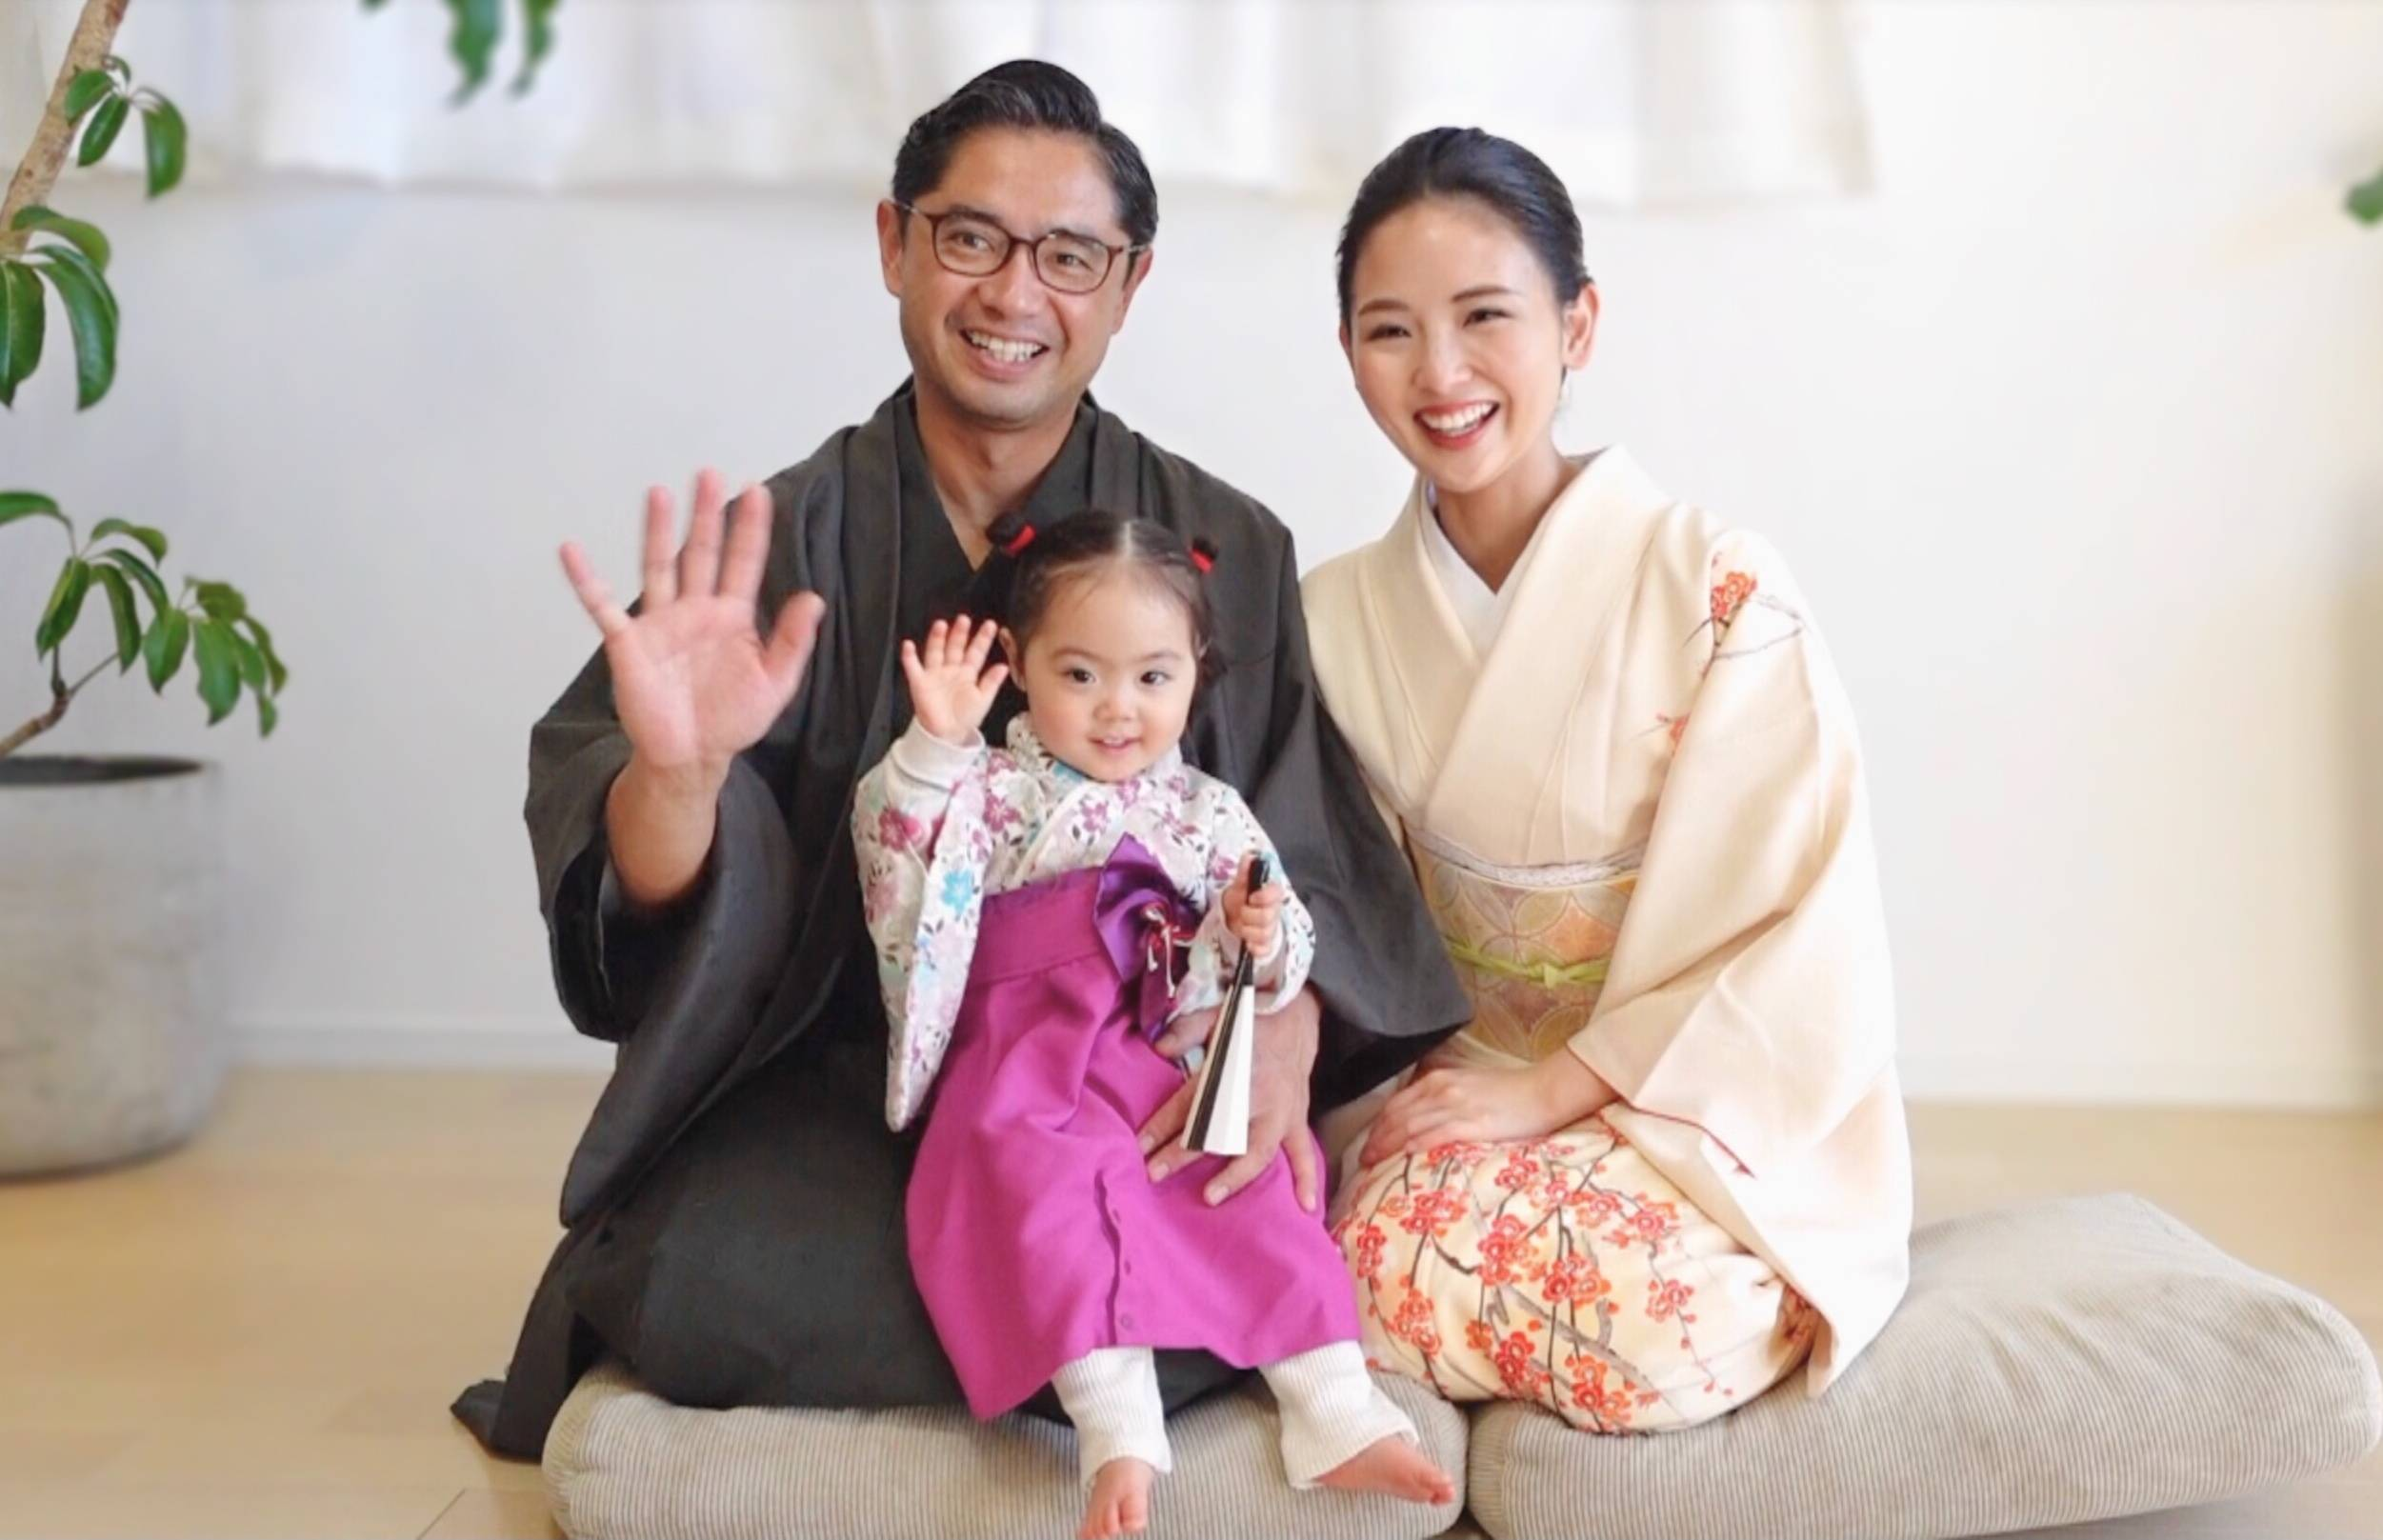 Welcome to the family: The videos on the Kimono Mom YouTube channel often focus on what it's like to be a mother in Japan. | COURTESY OF KIMONO MOM